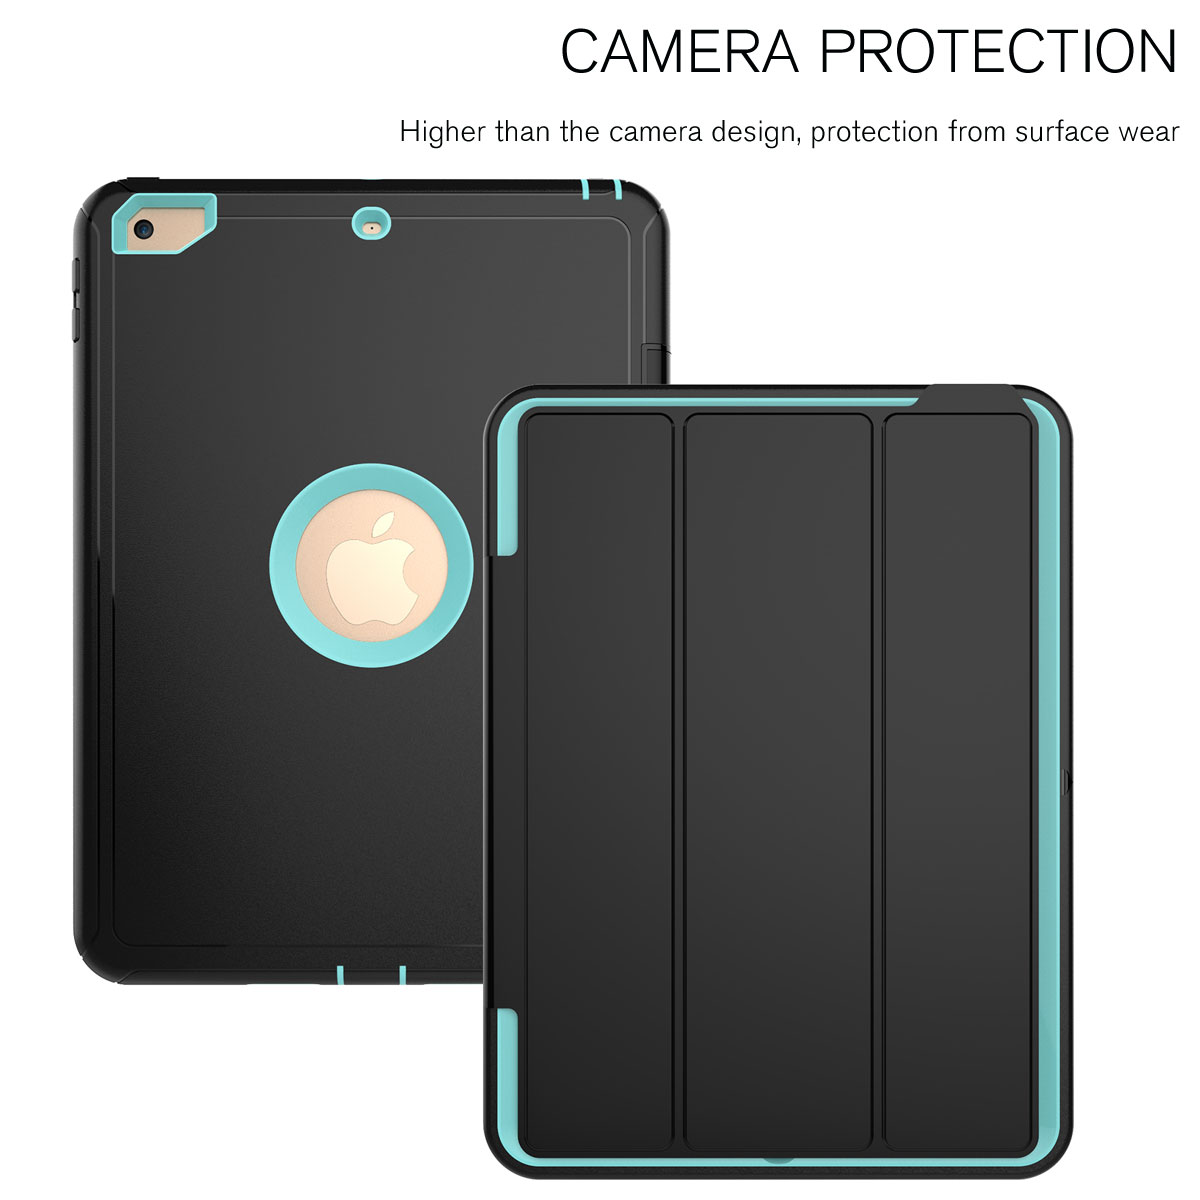 Hybrid-Shockproof-Screen-Protector-Case-Cover-For-Apple-iPad-9-7-Mini-Air-2-Pro